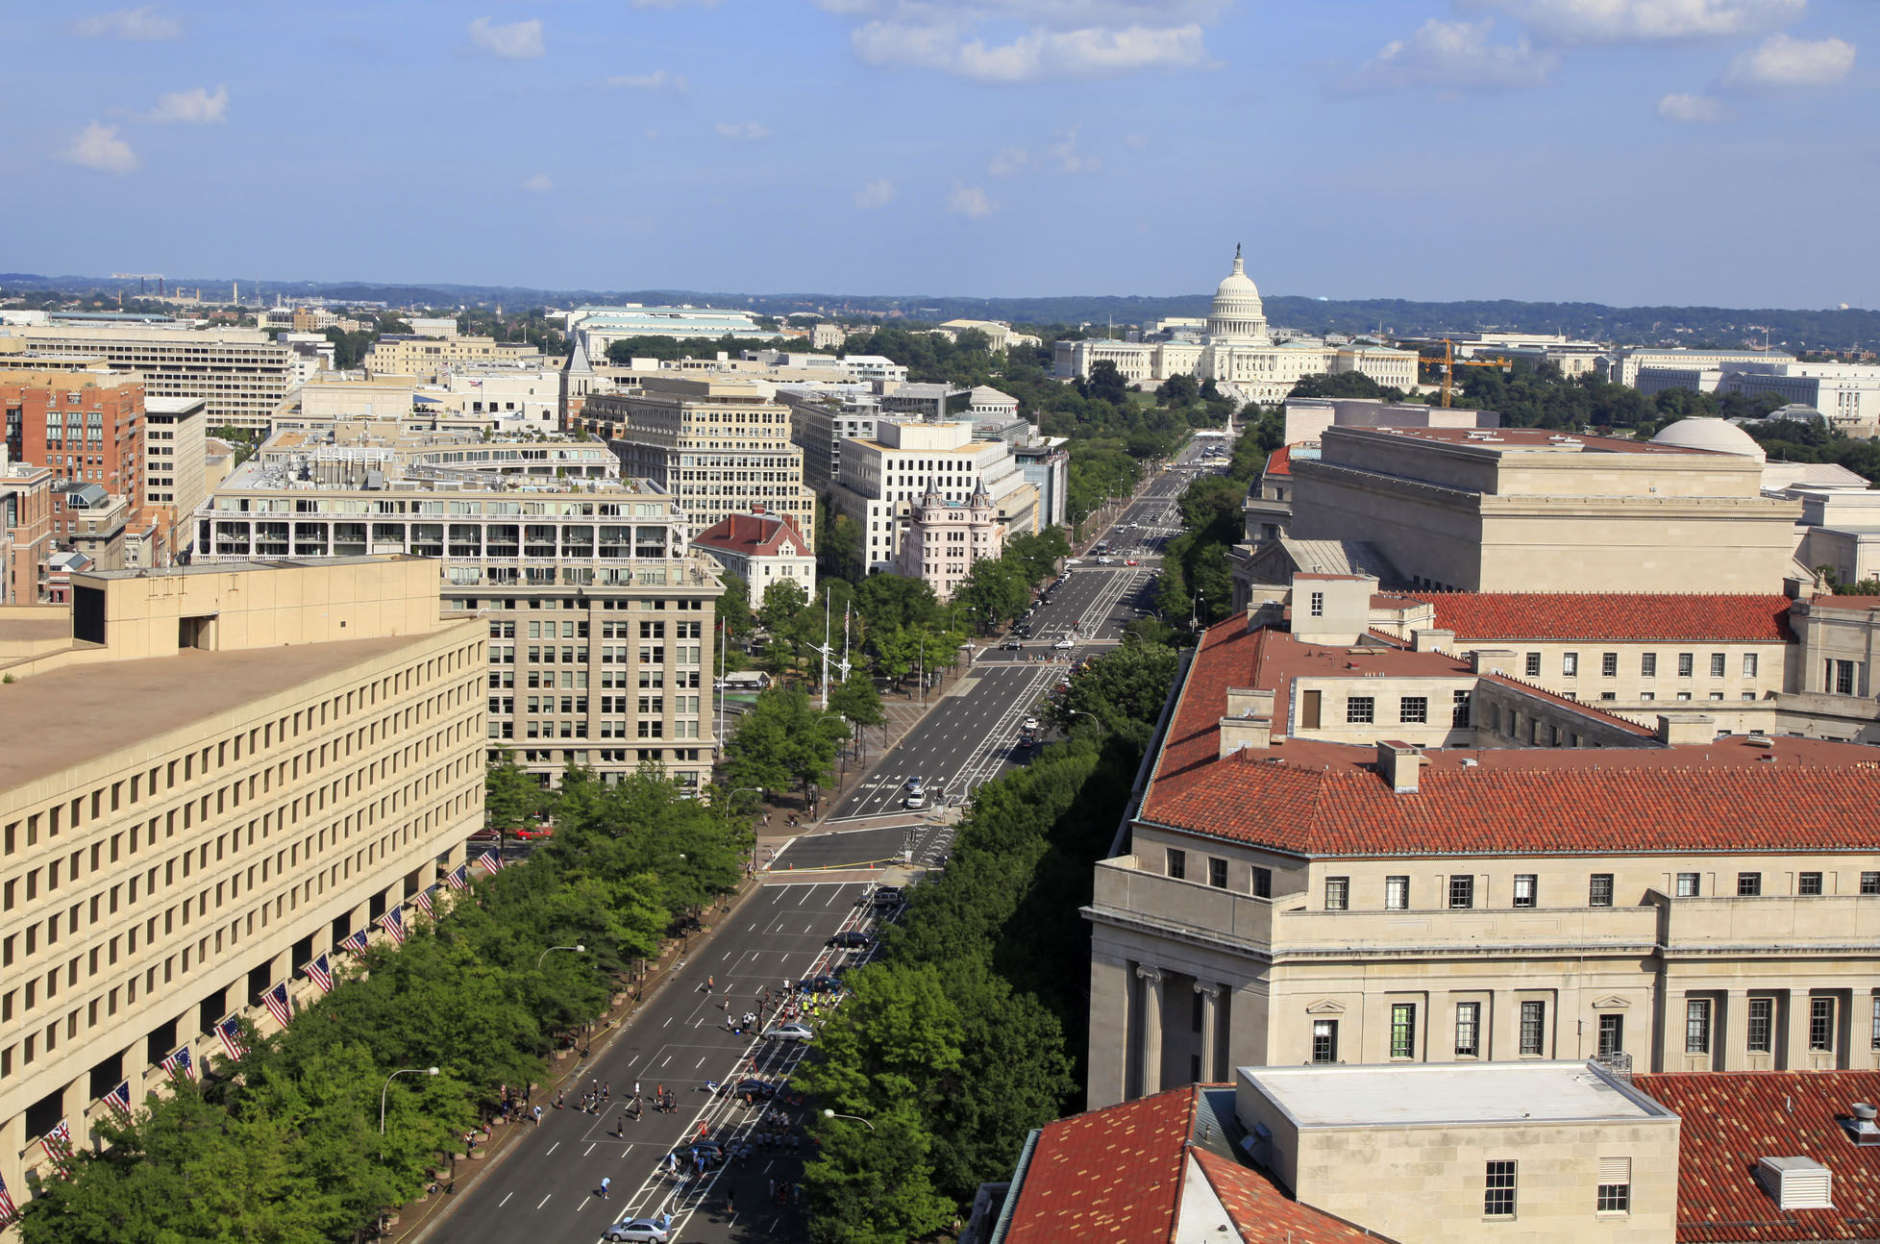 D.C.'s iconic Pennsylvania Avenue is seen in this file photo. (Thinkstock)